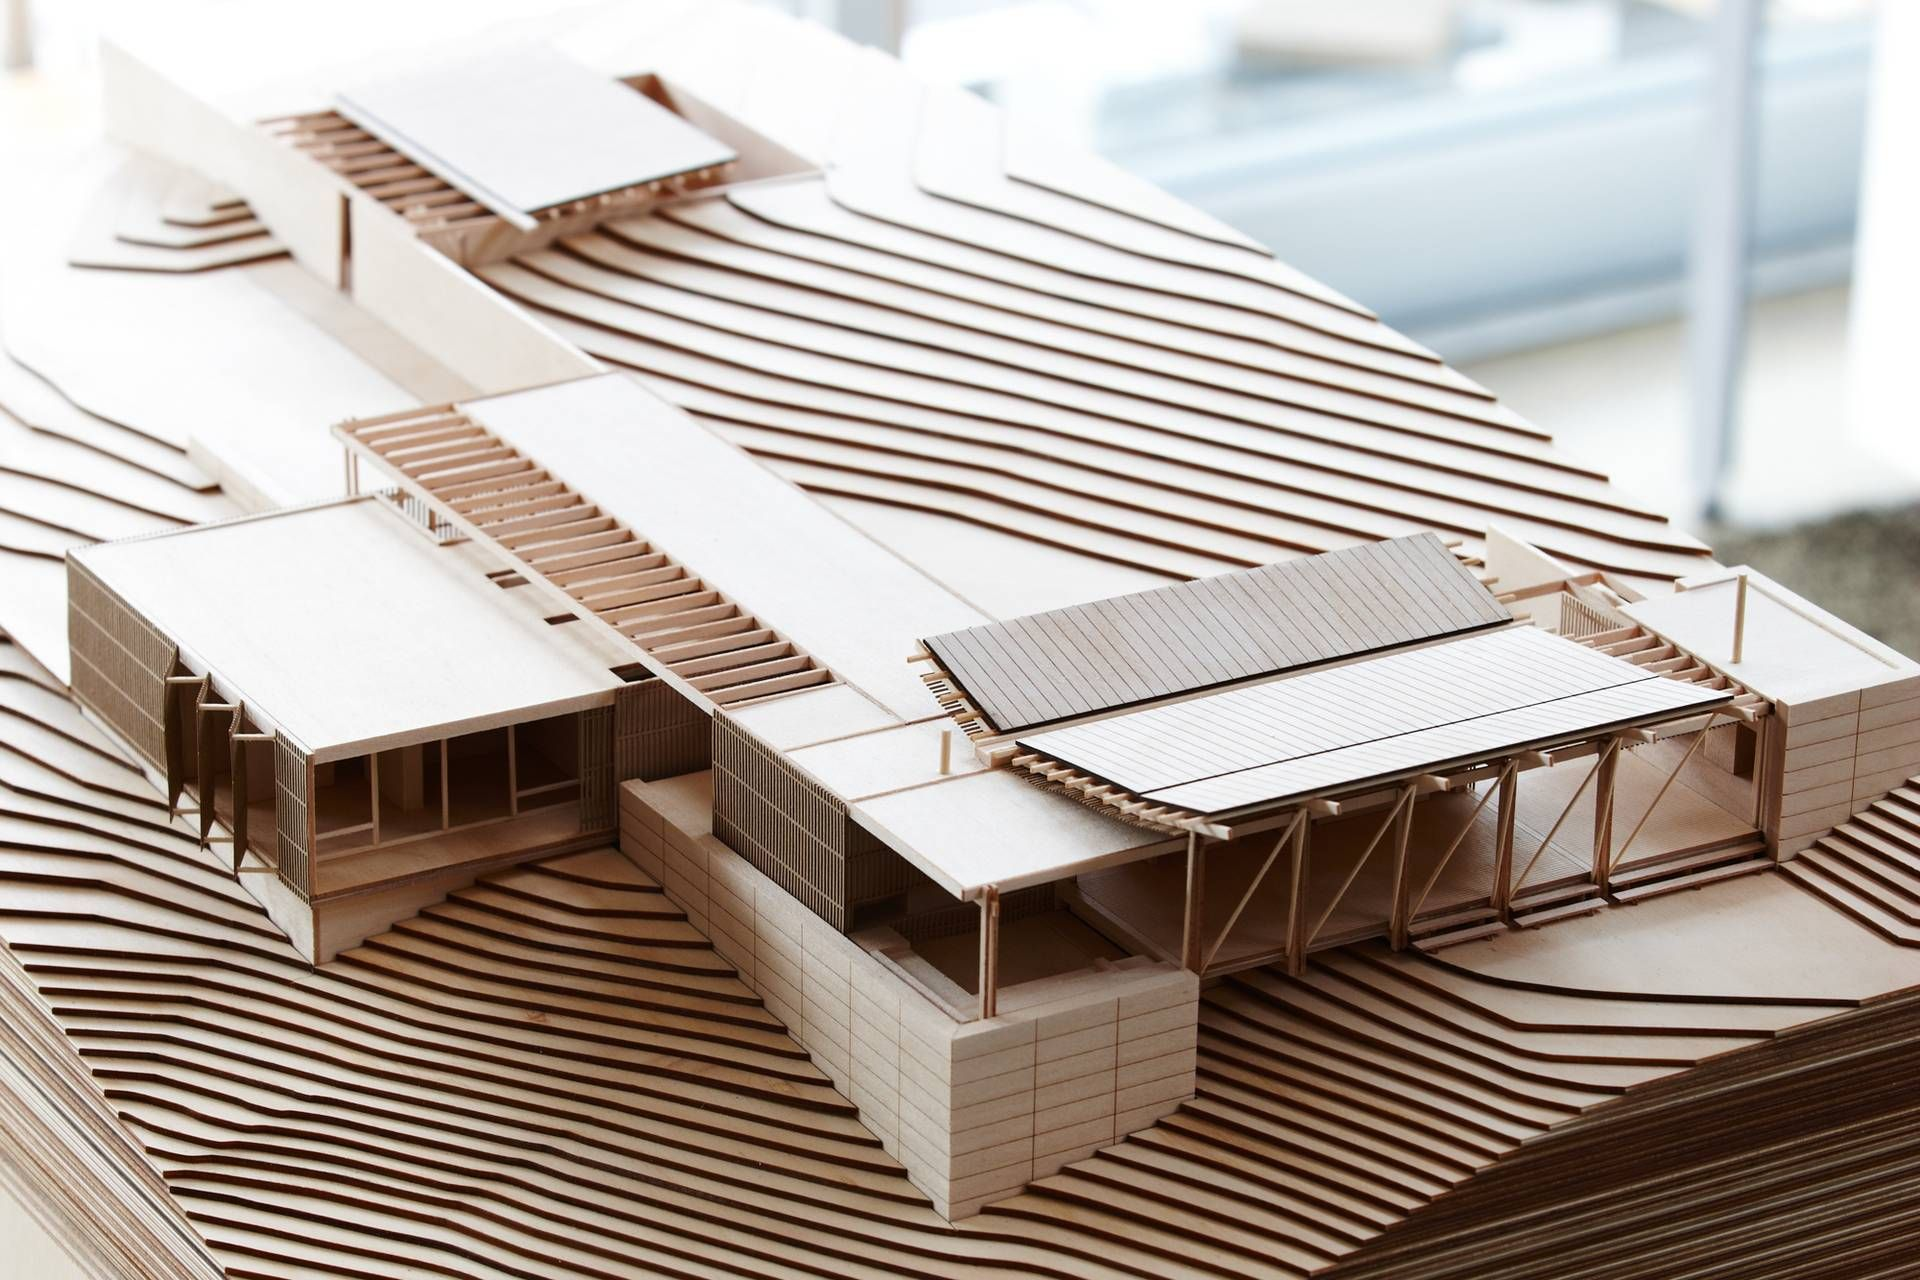 Festim Toshi   Architectural Models | Maquetas | Pinterest | Architectural  Models, Models And Architecture